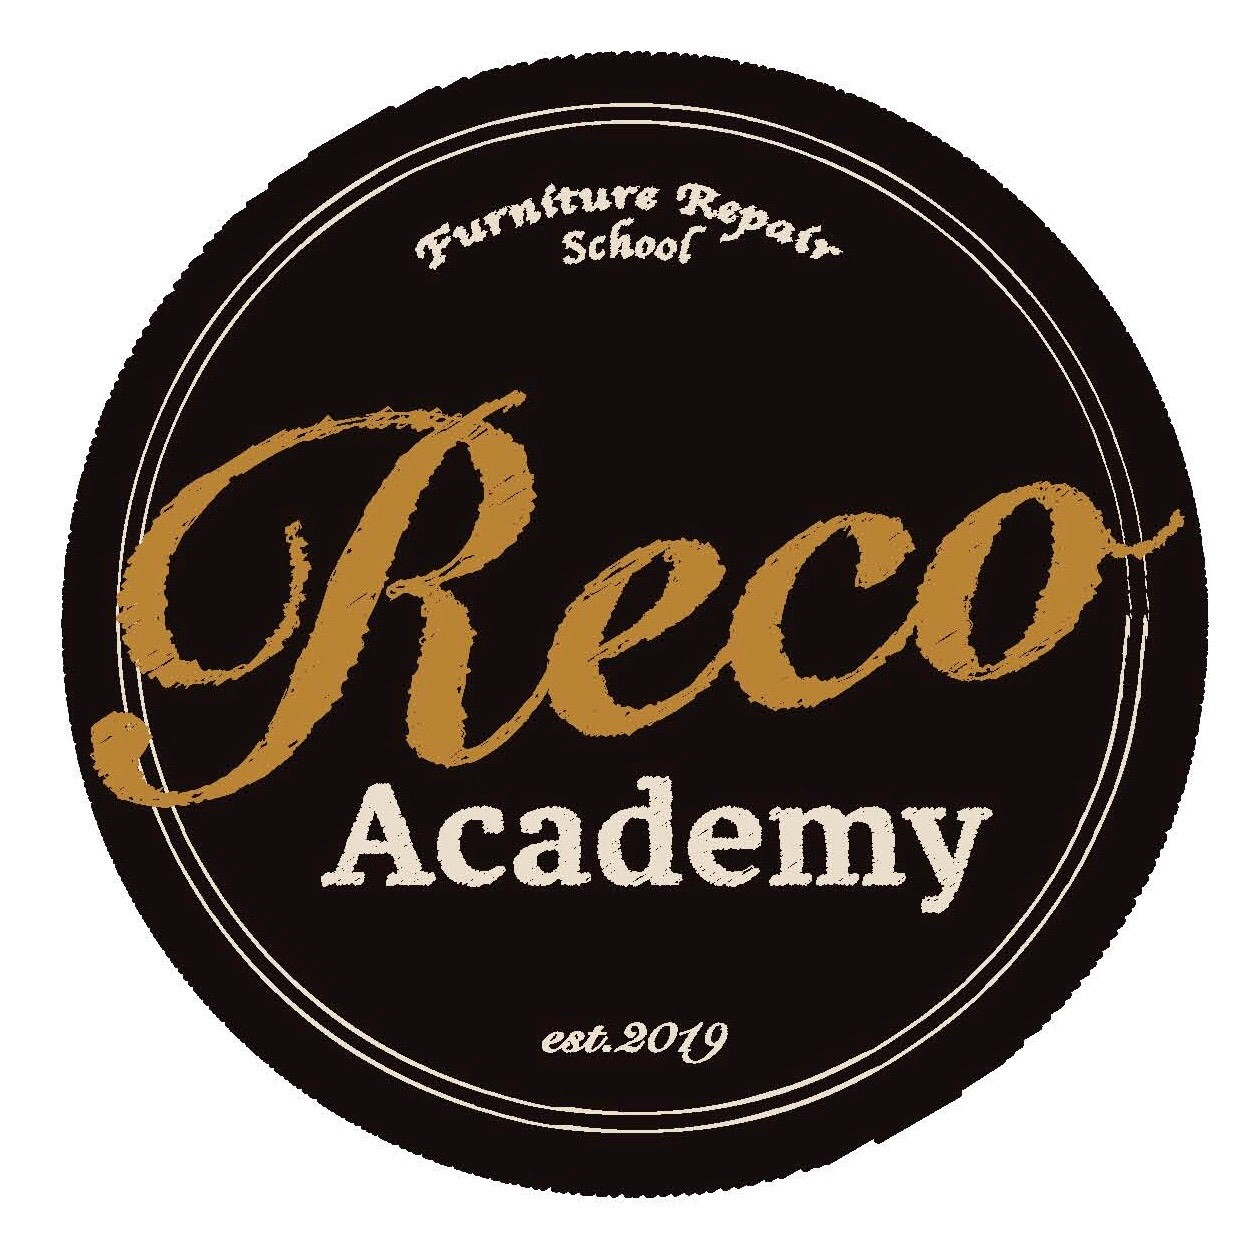 \ Reco Acadmy Summer Curriculum  受付開始のお知らせ。/